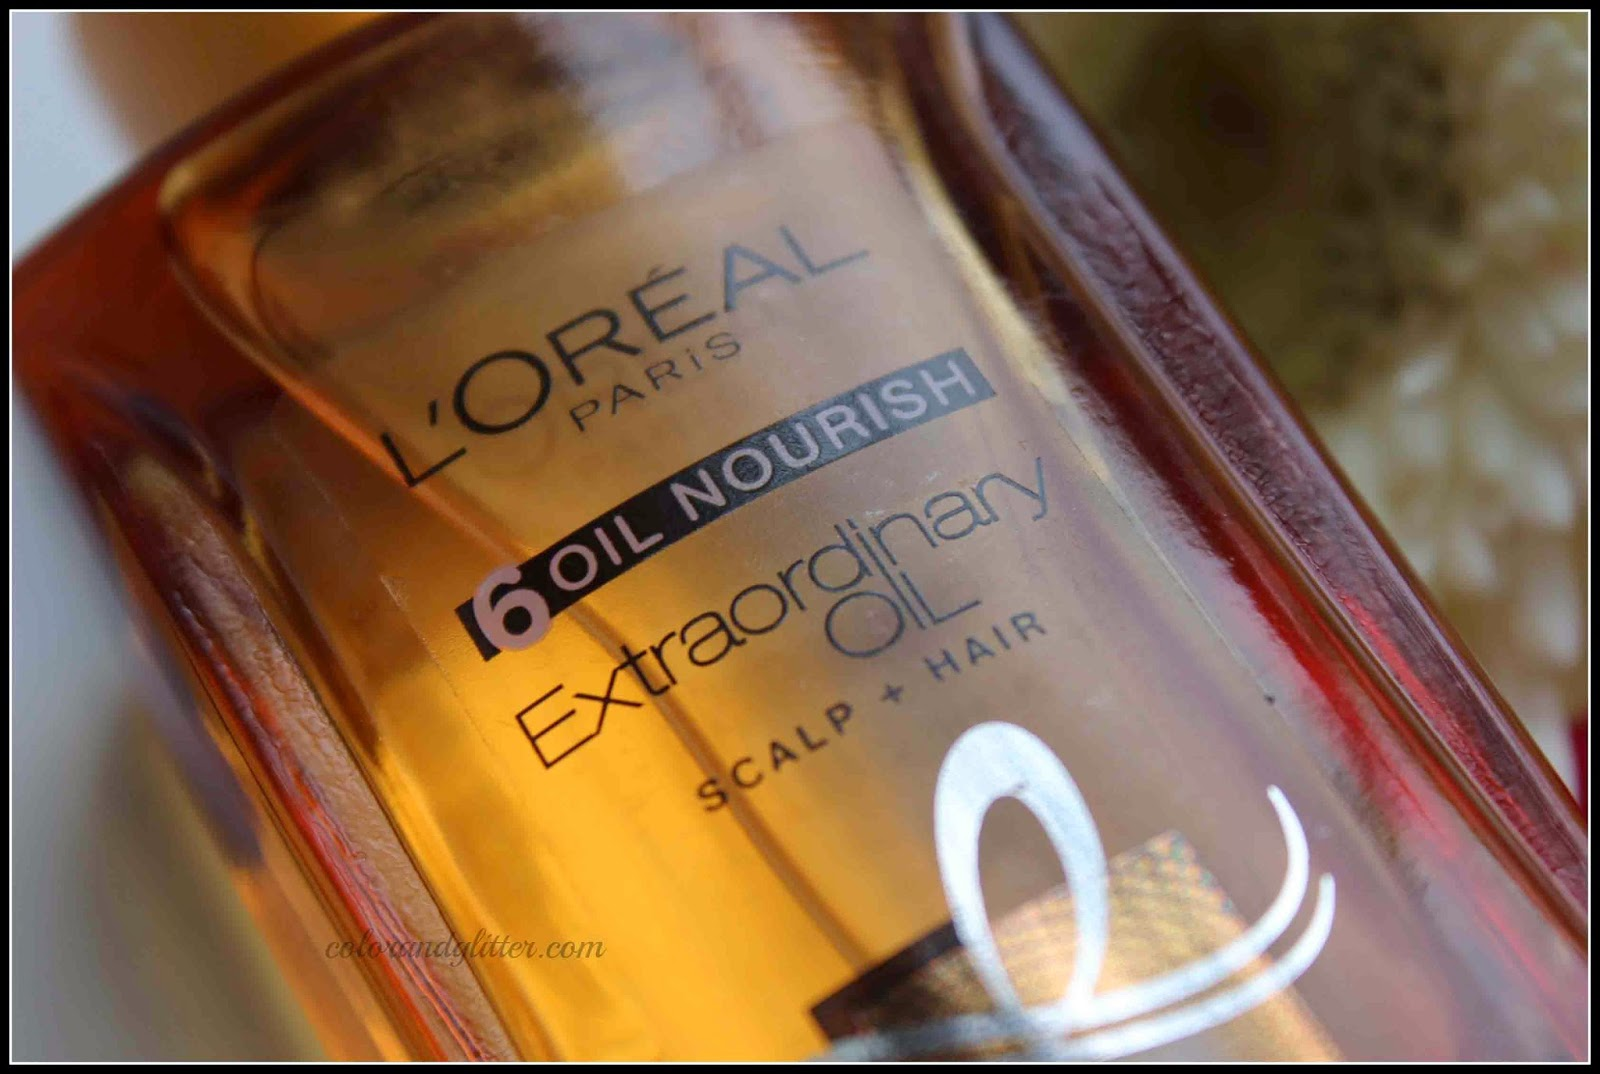 L'Oreal Paris 6 Oil Nourish Oil || Review